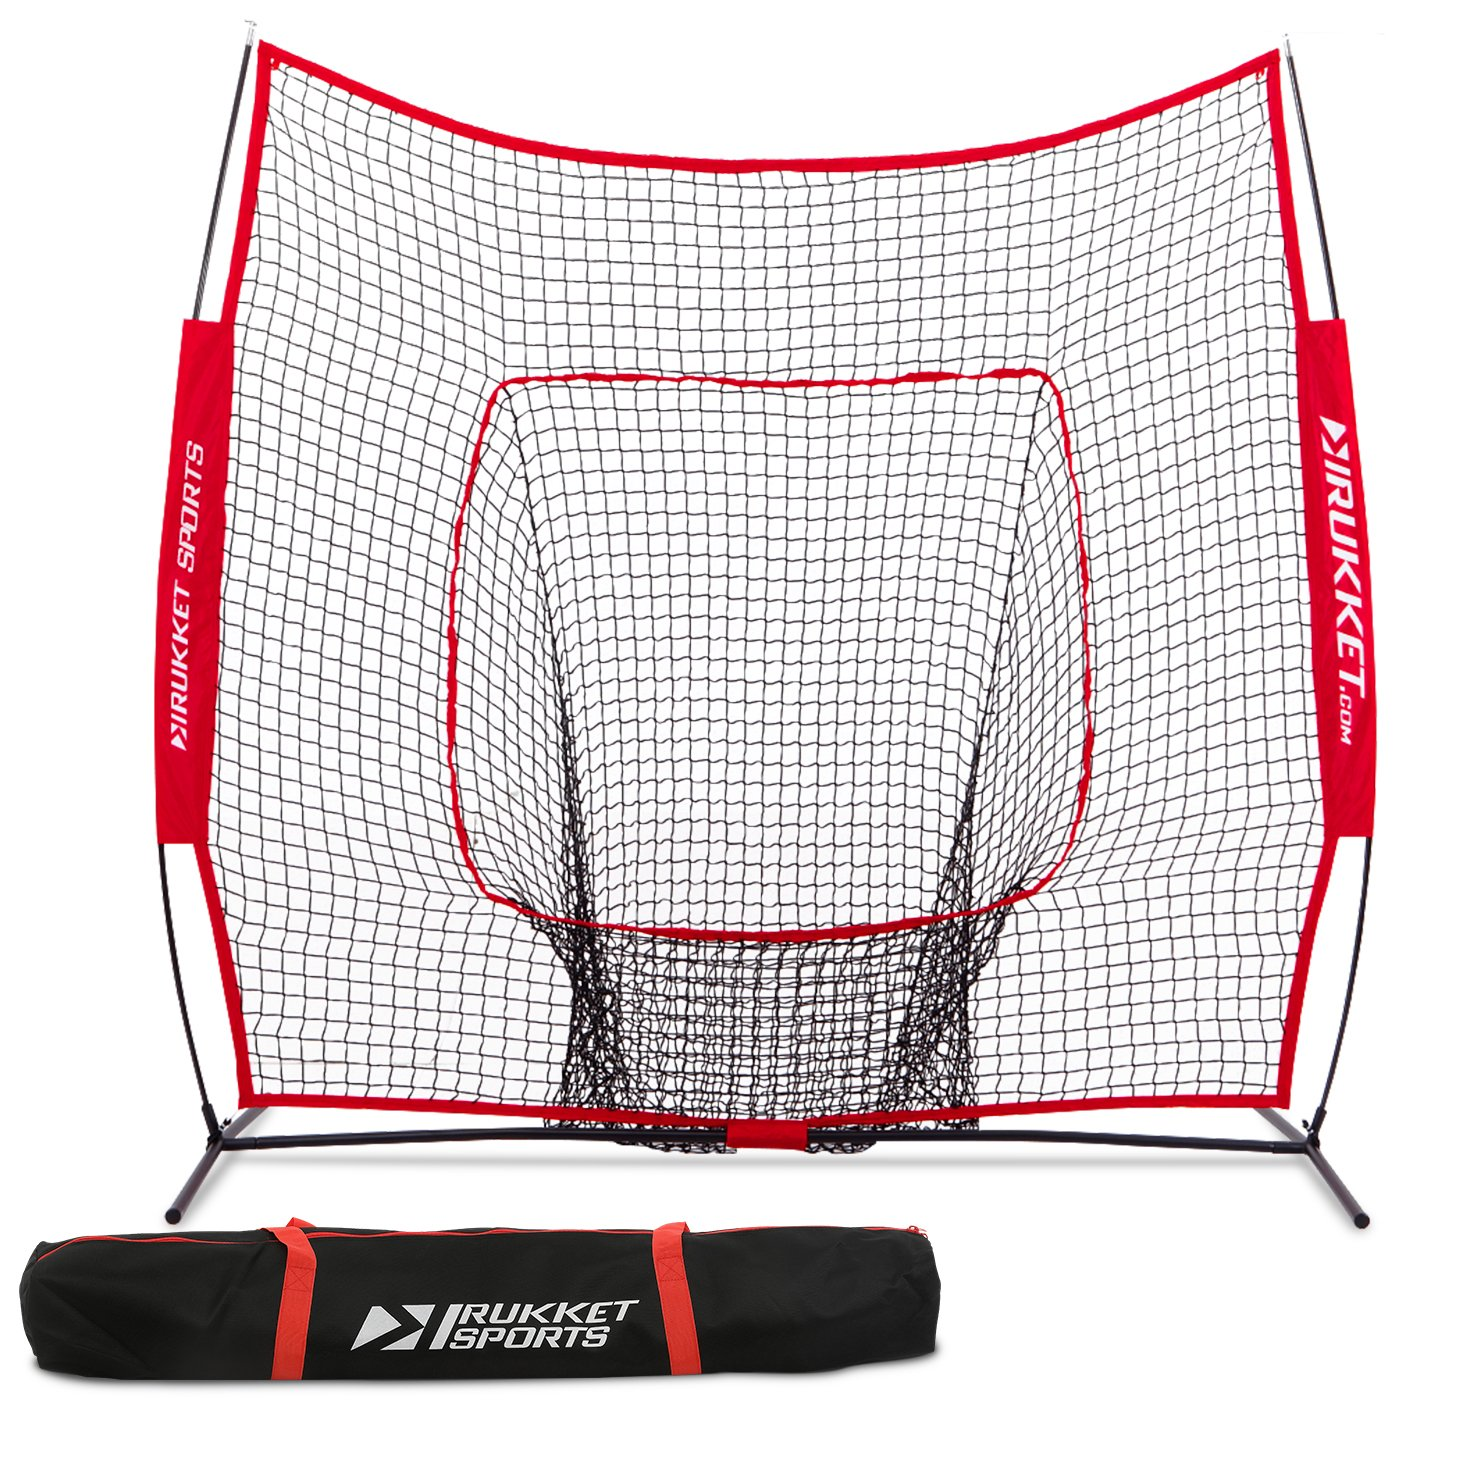 Rukket Sports 7 x 7 Baseball & Softball Practice Net